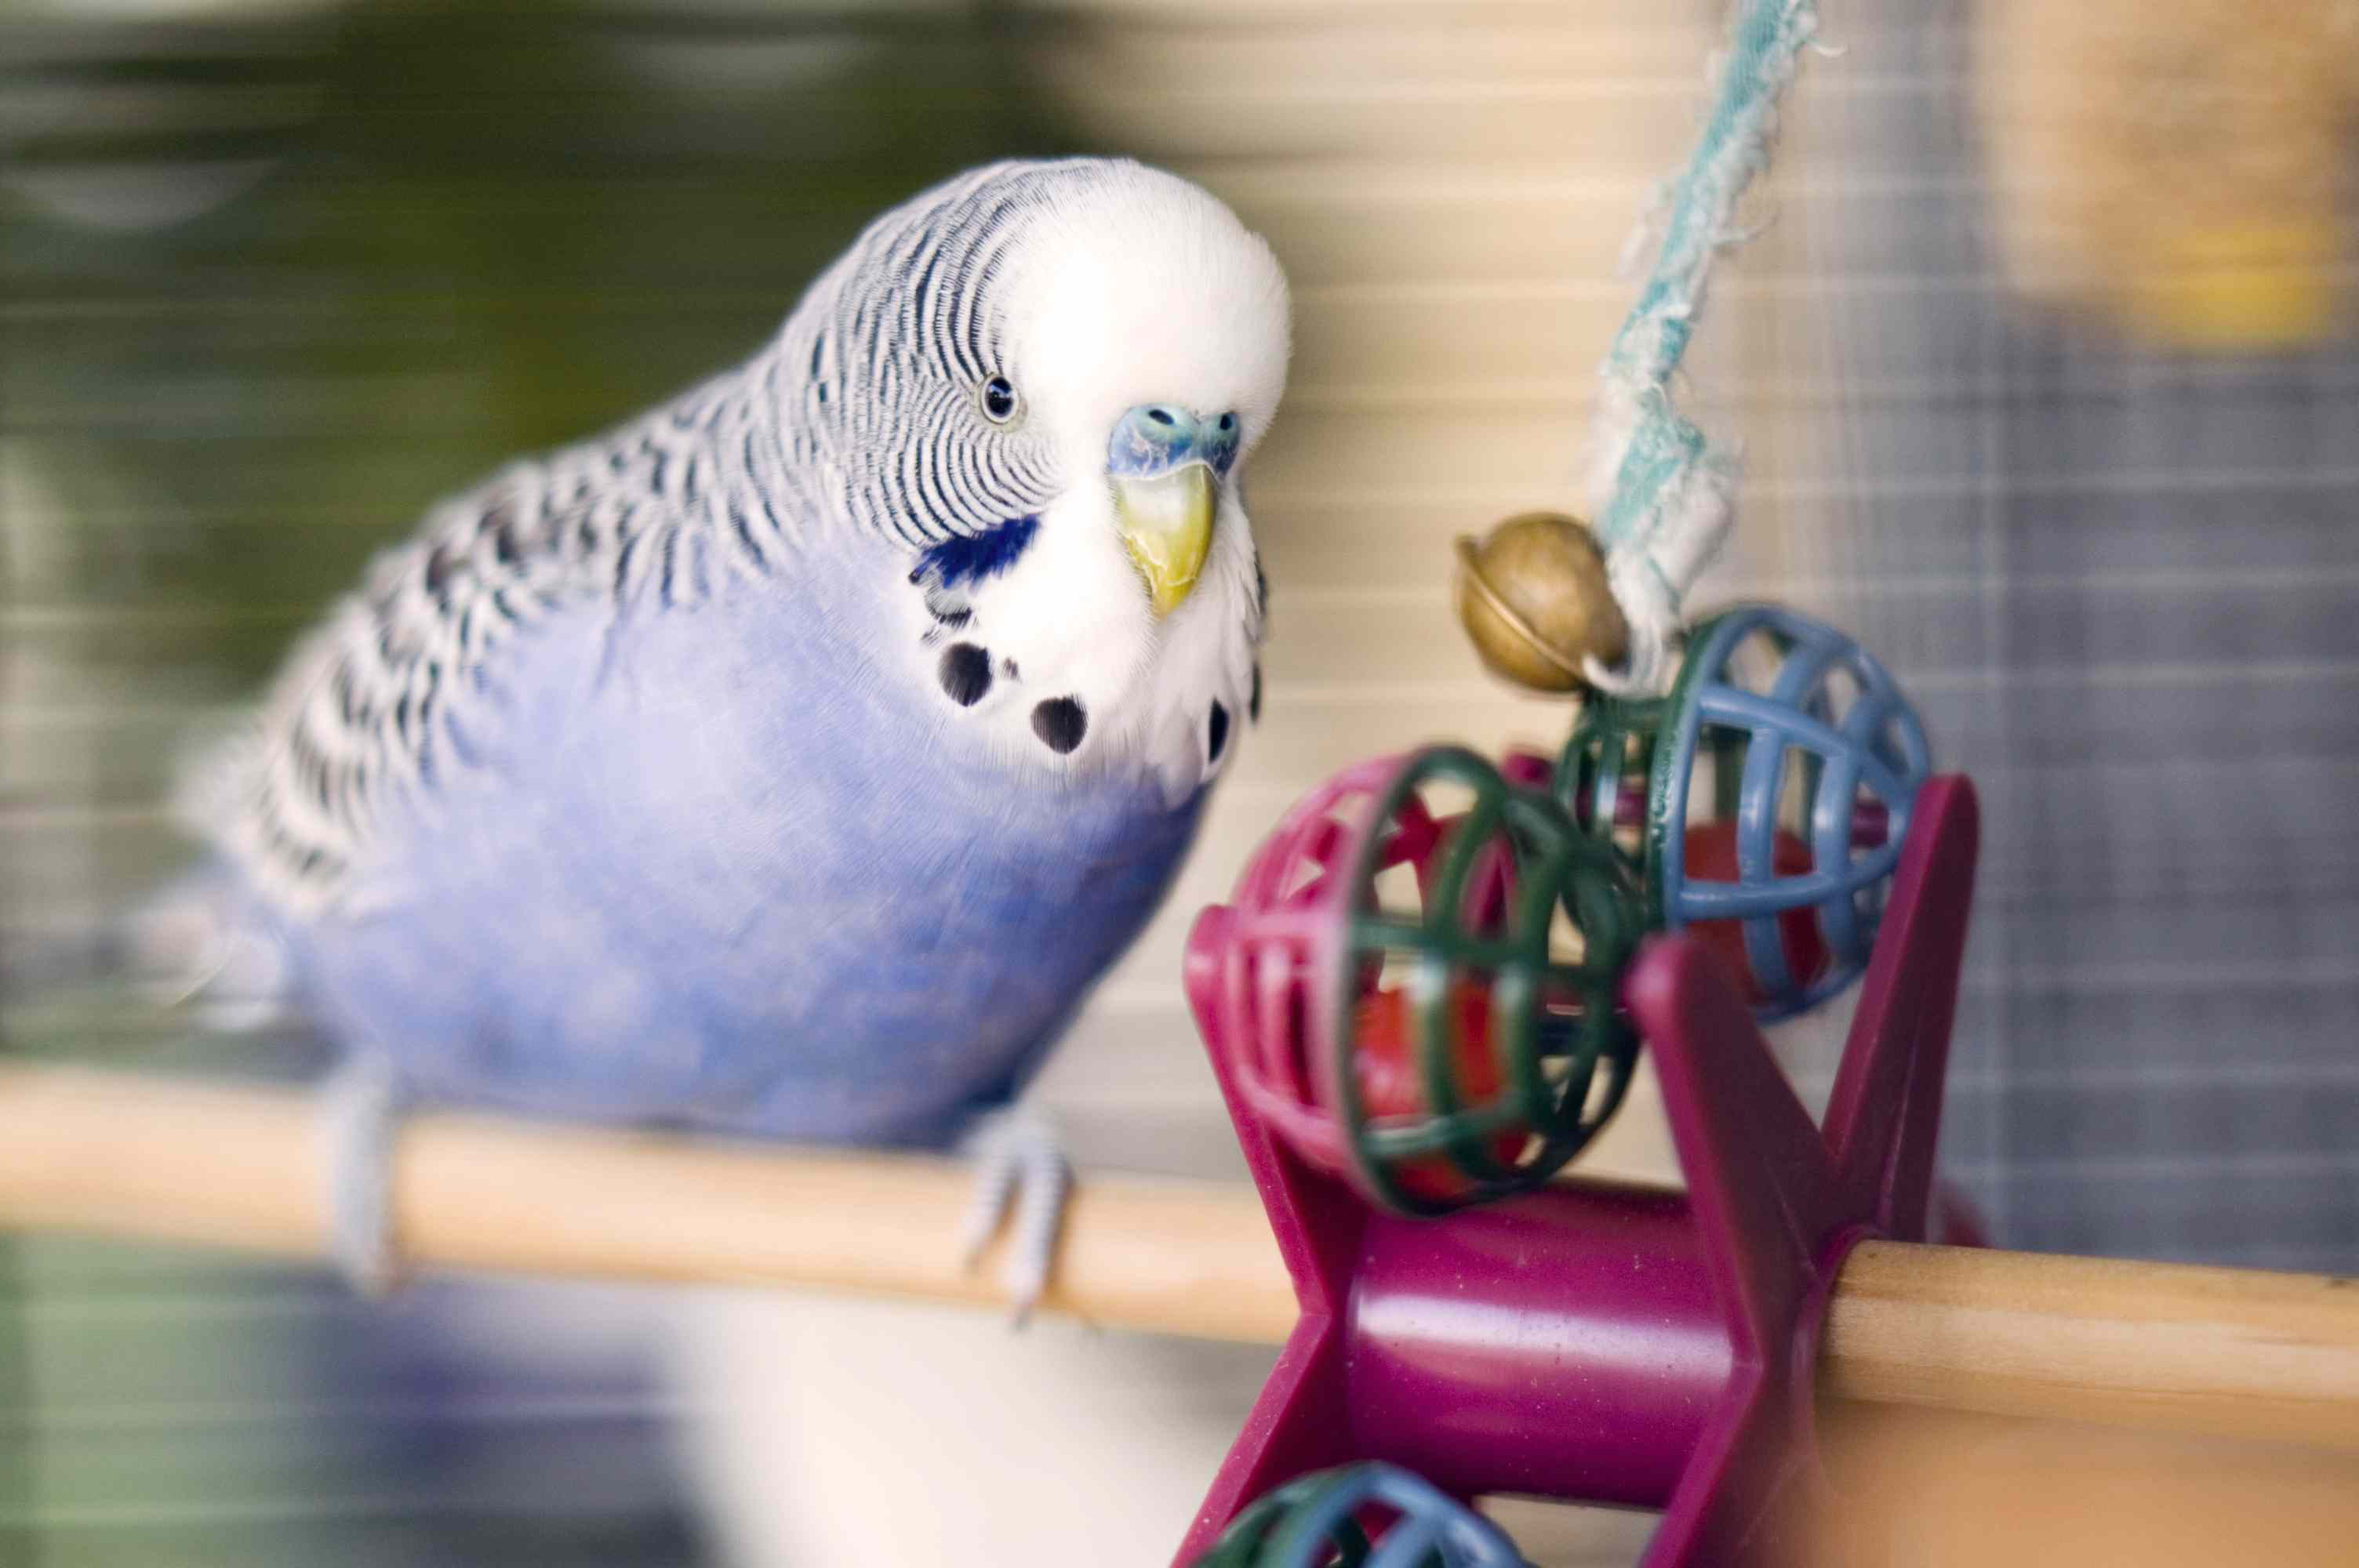 Blue budgie with a toy